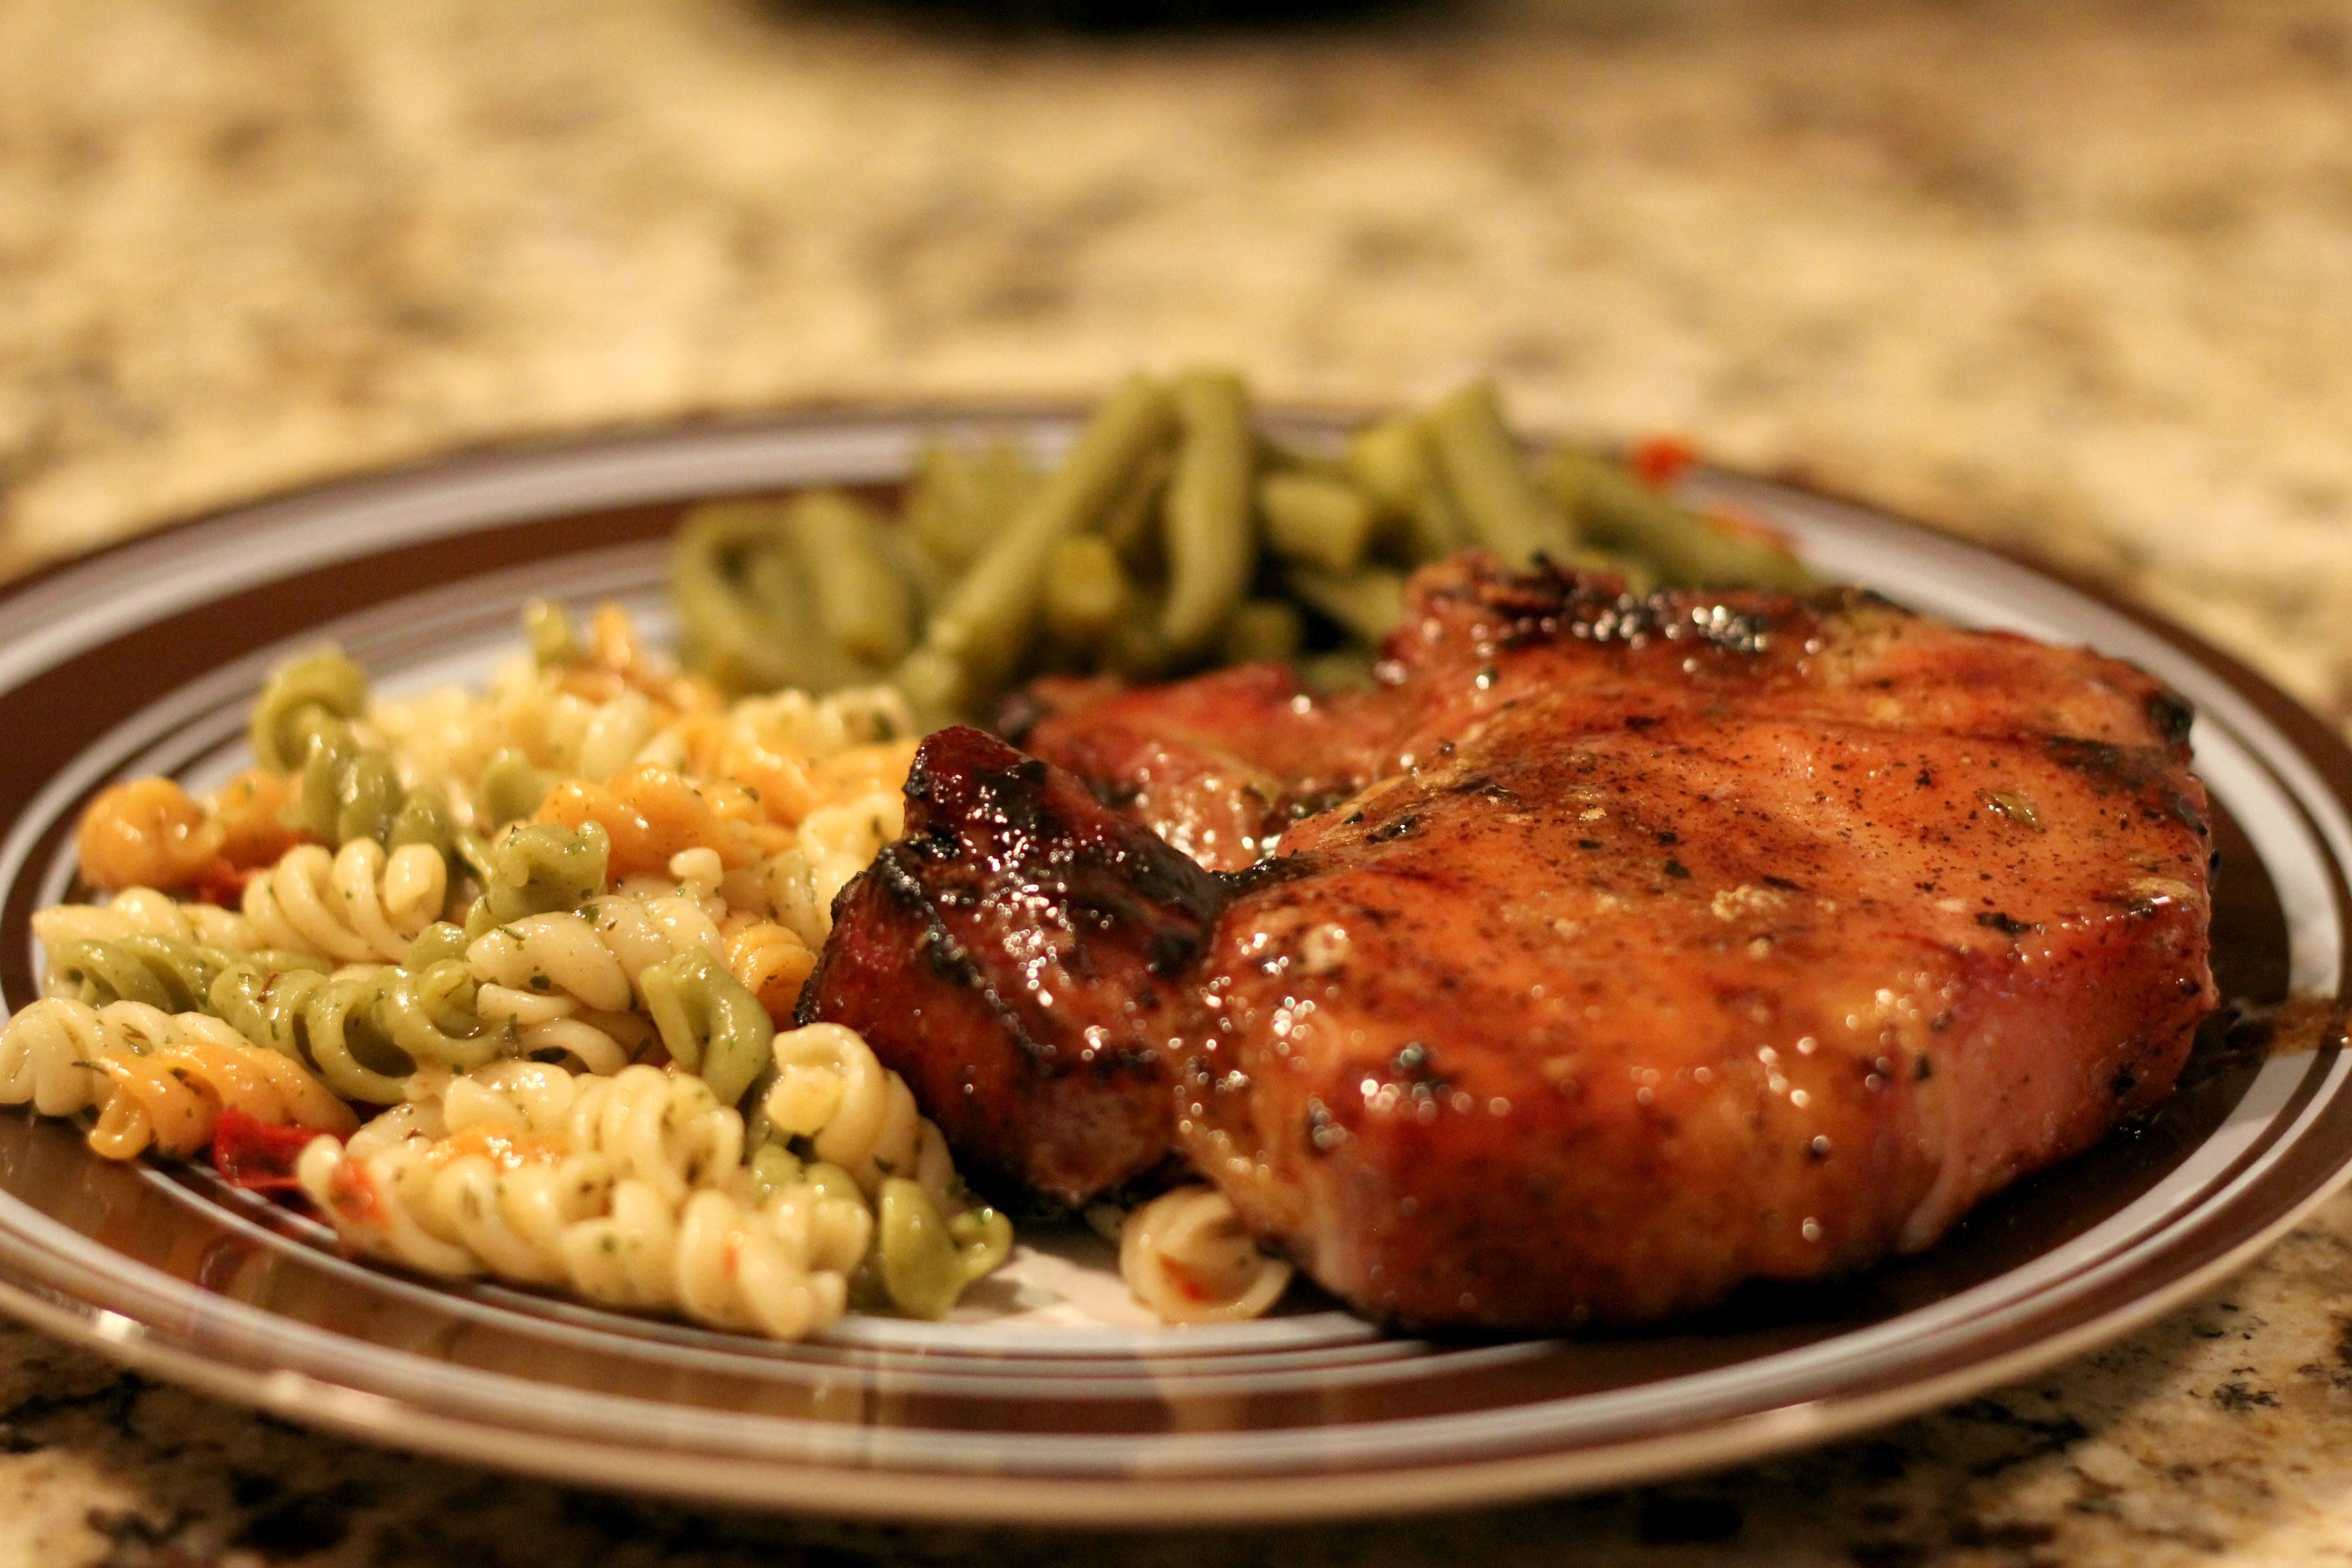 Doesn't that pork chop look AMAZING?! I do believe that's the ...